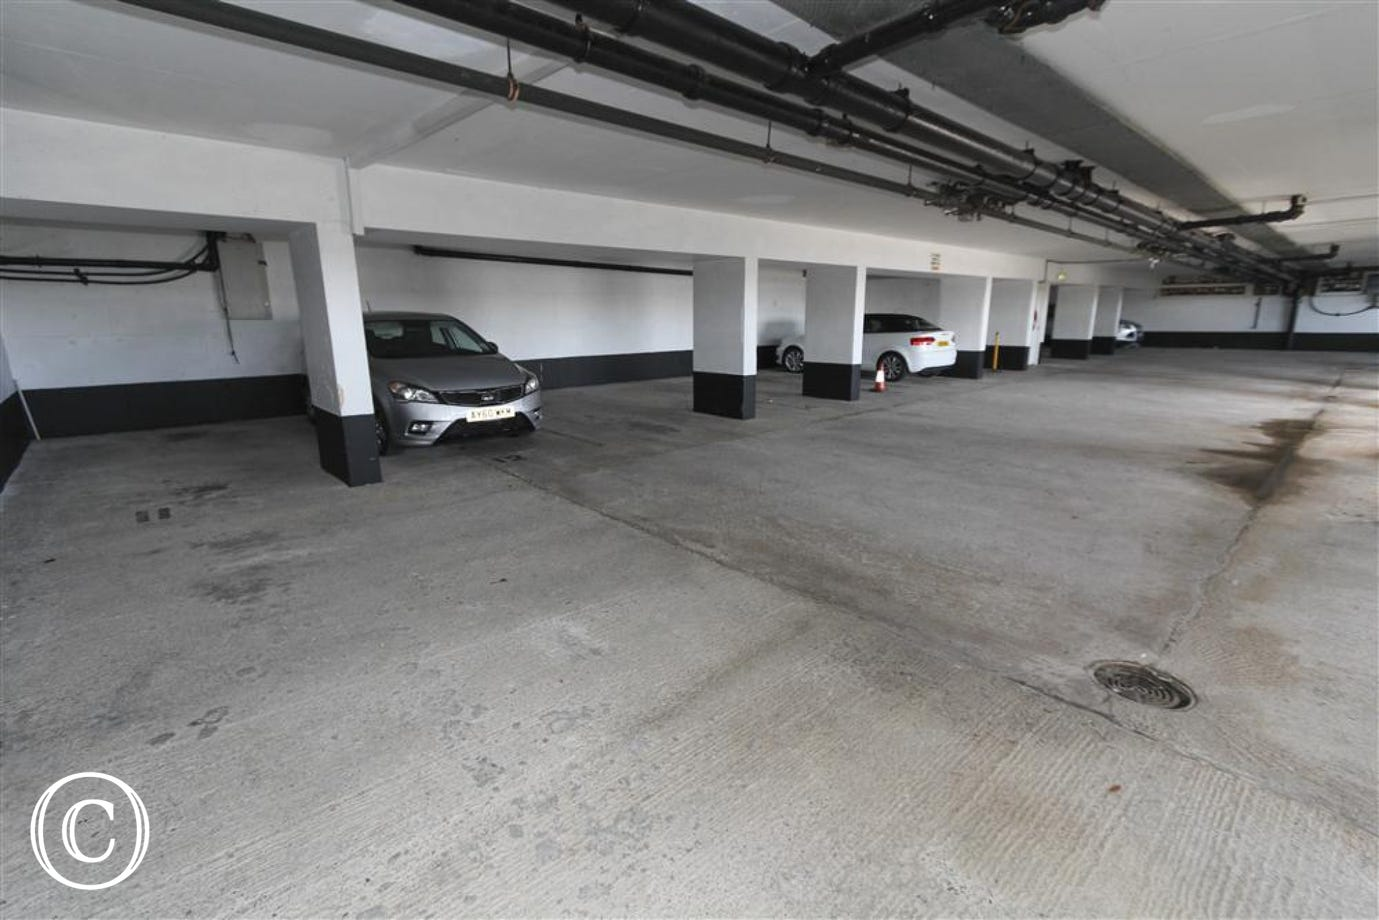 Parking Space, second from left (with silver car in space).